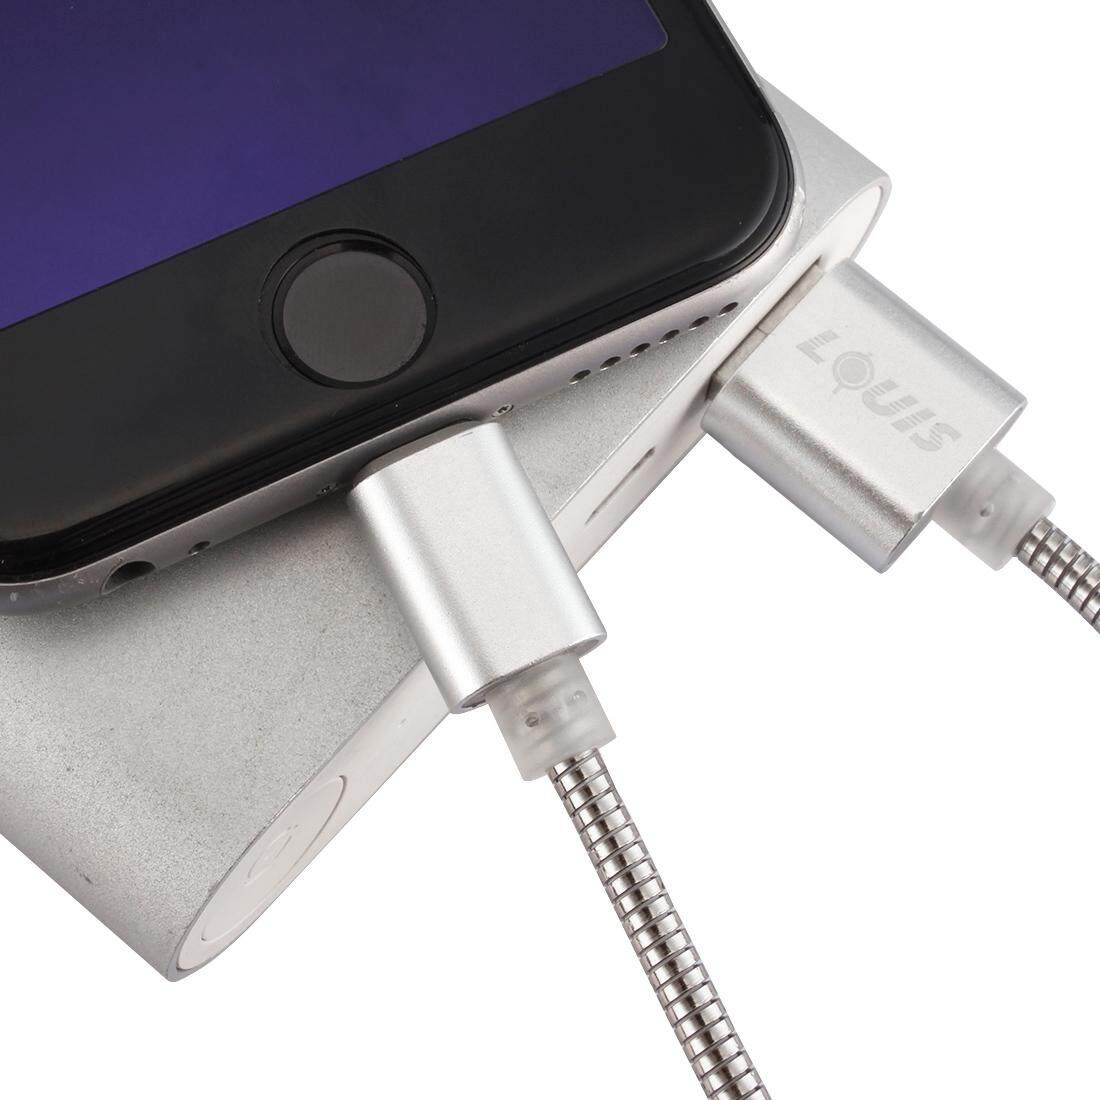 LOUIS 1m Stainless Steel + Aluminum Alloy 2.1A 8 Pin to USB 2.0 Sync Data